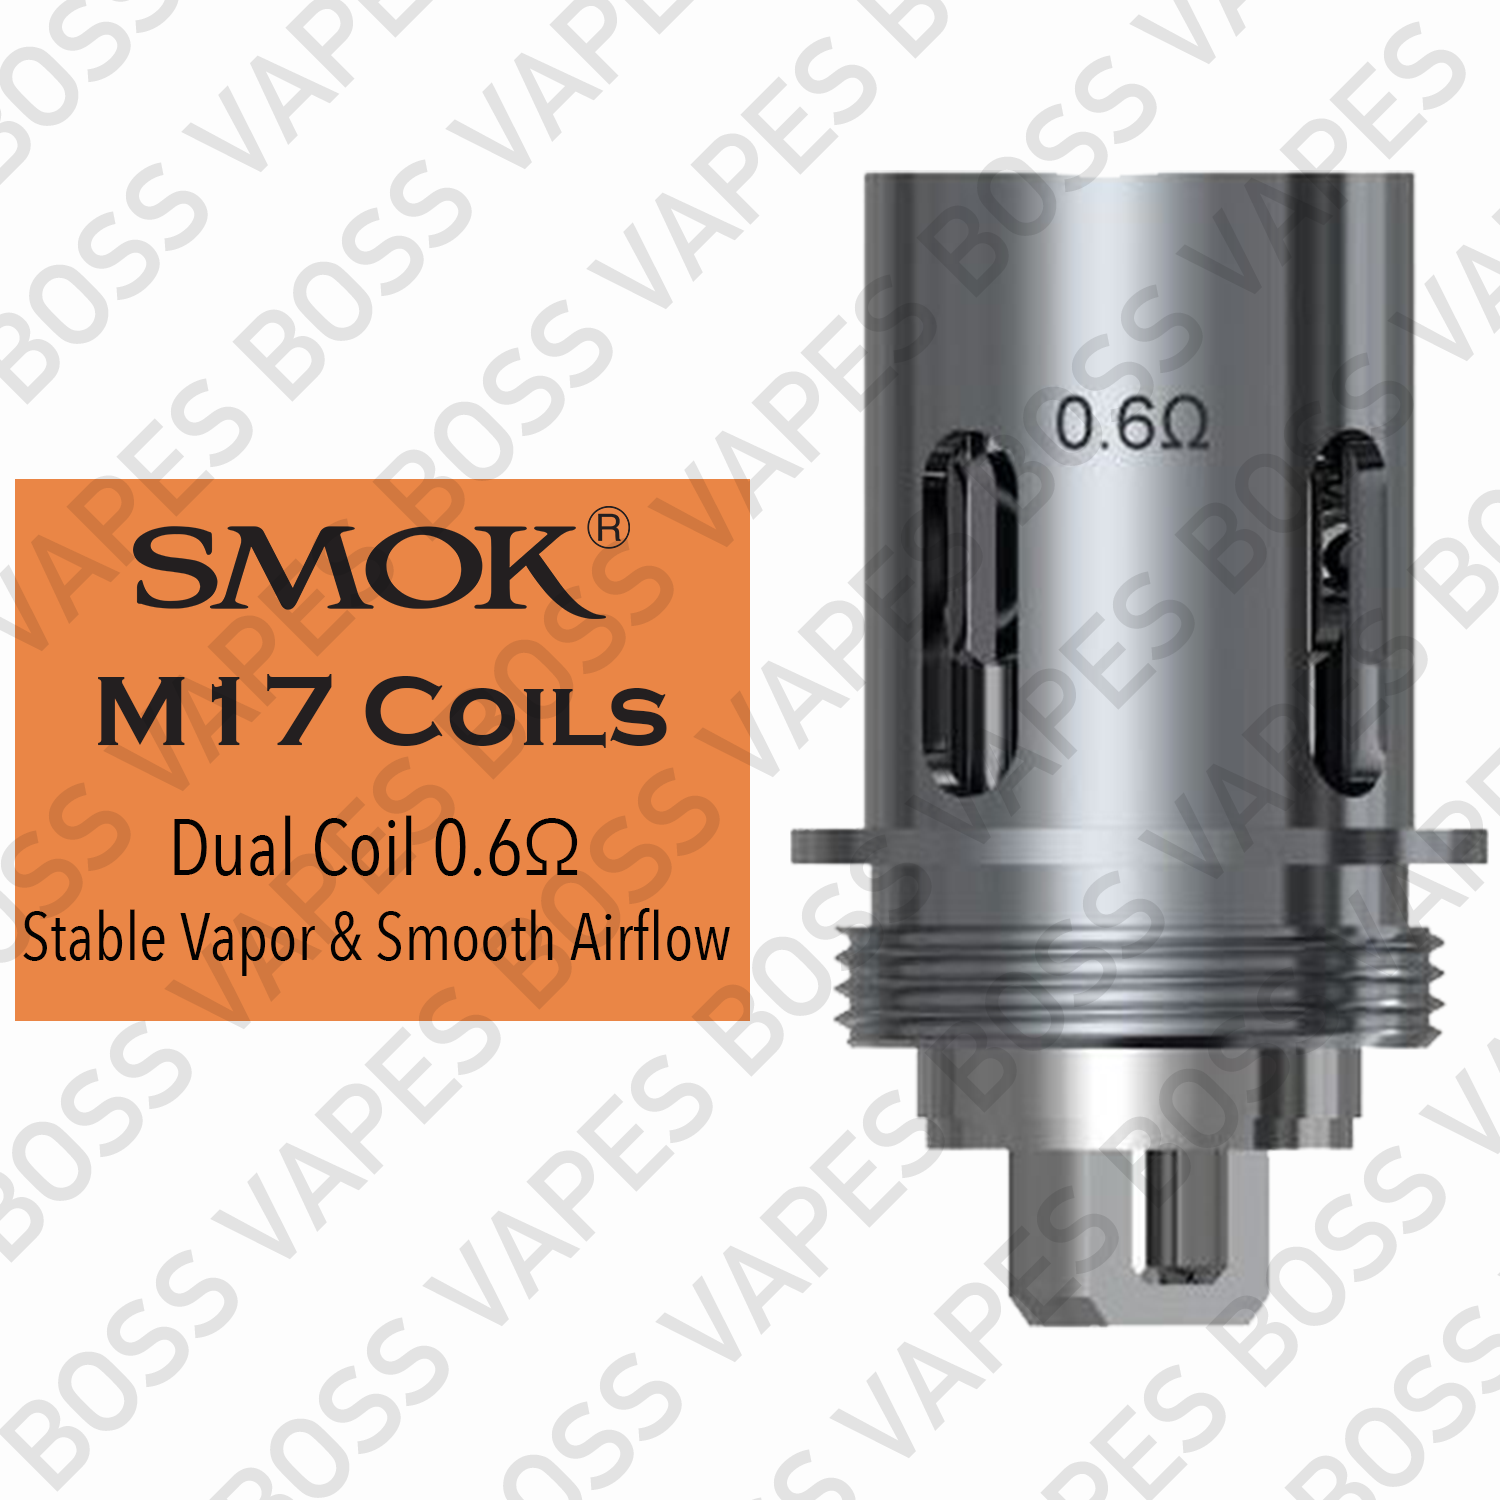 SMOK Stick M17 Coils - Boss Vapes